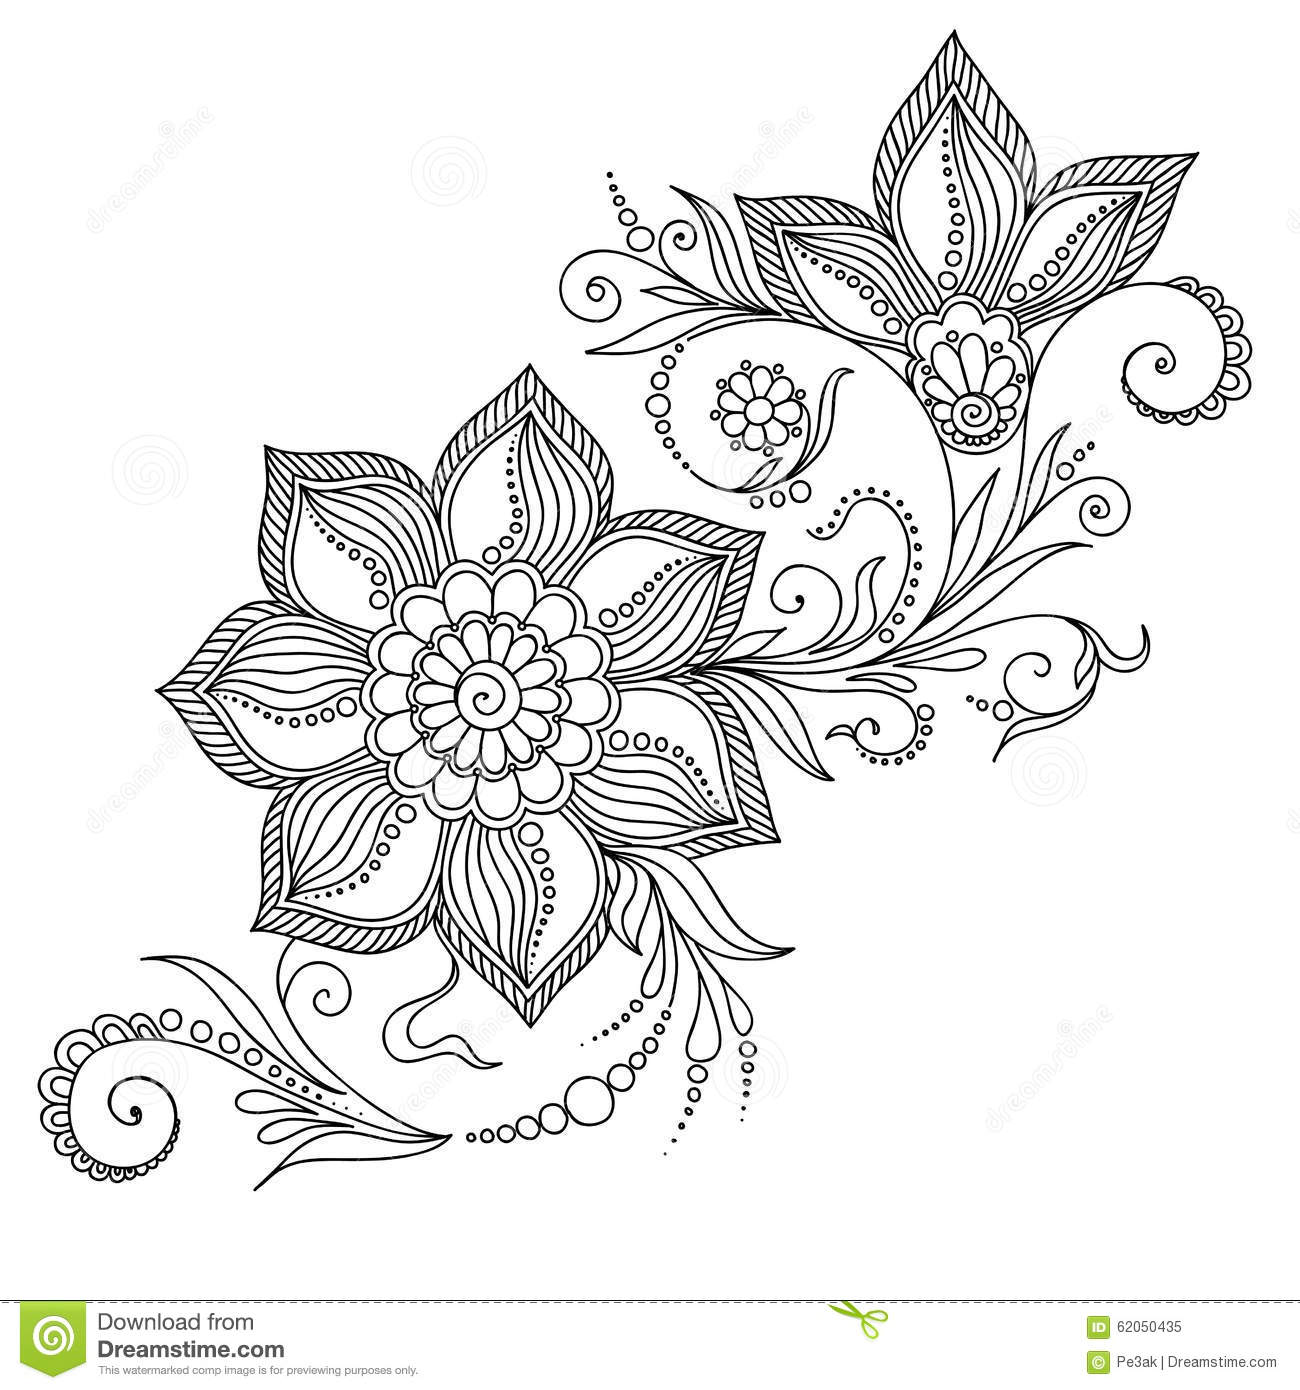 Royalty Free Illustration Download Pattern For Coloring Book